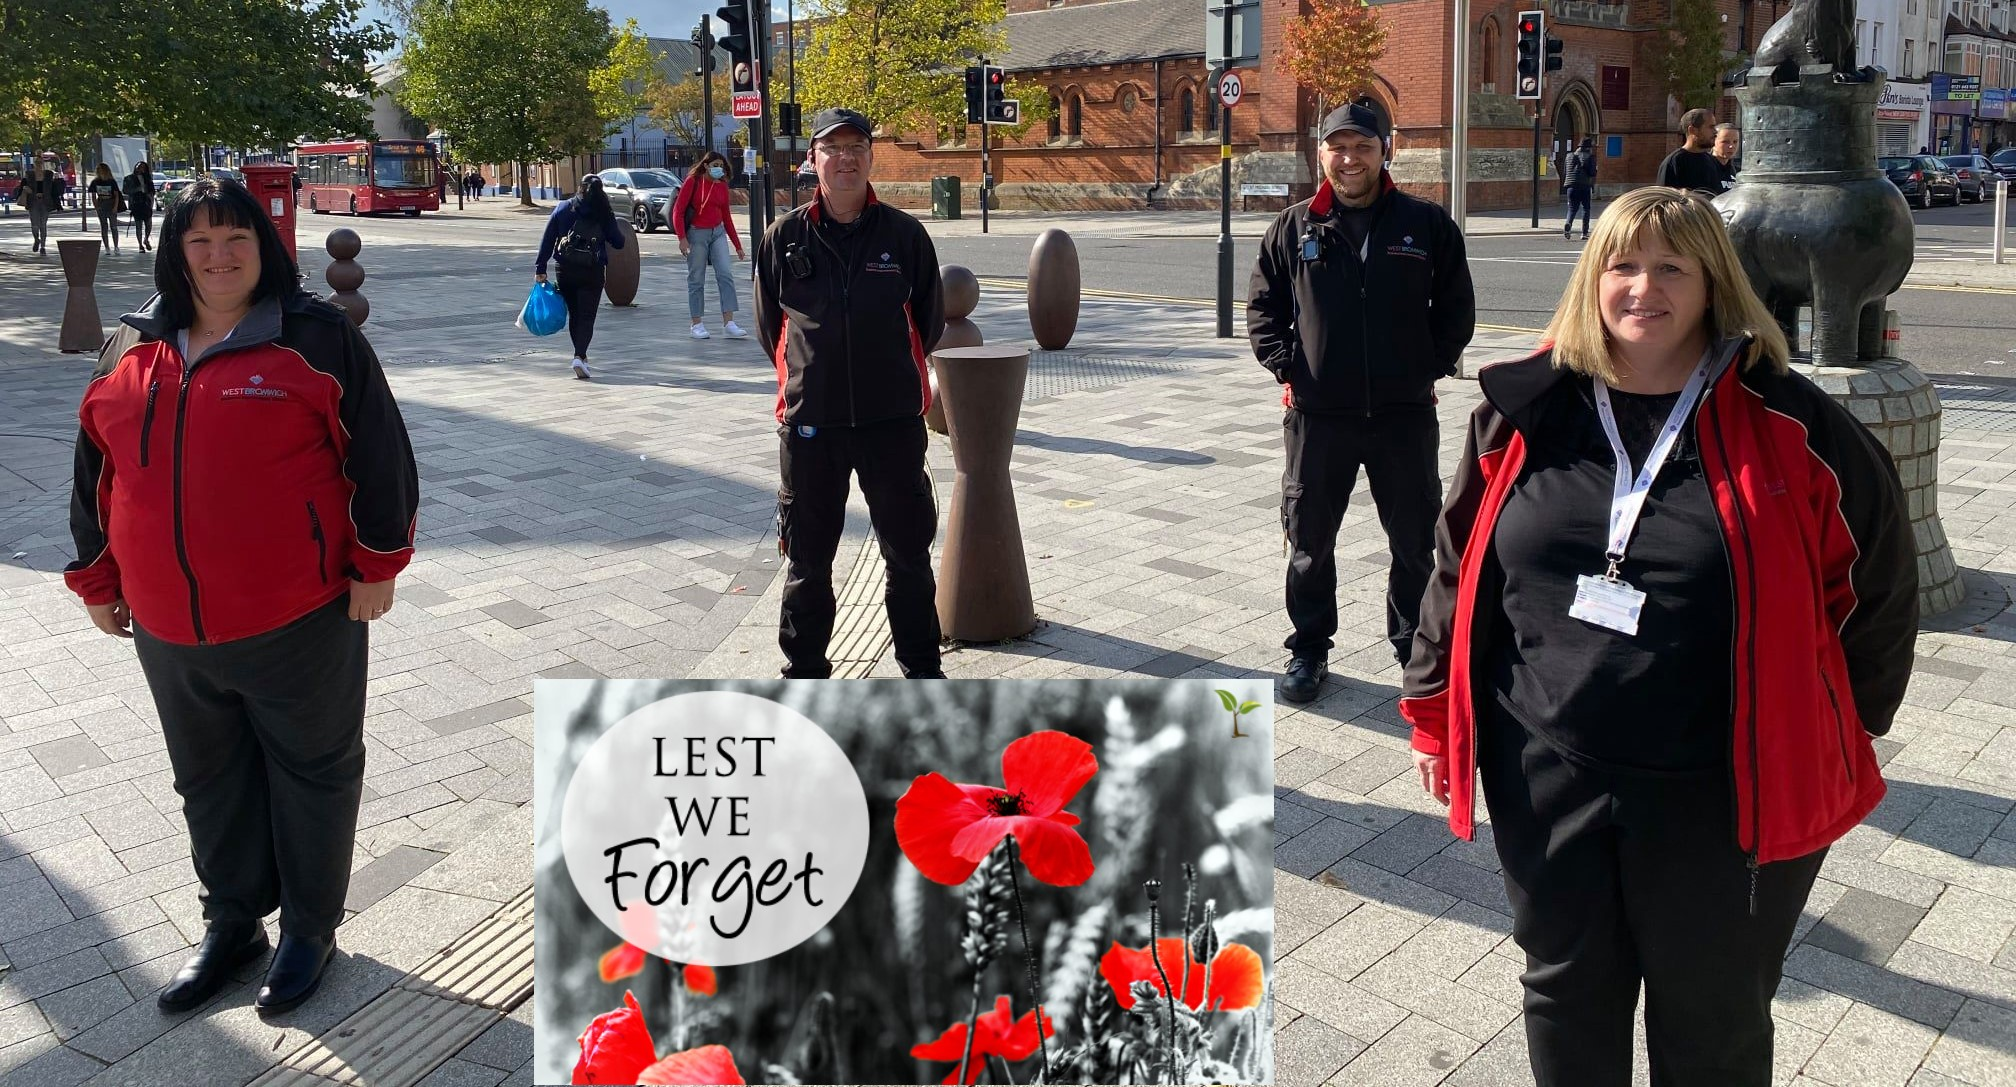 West Bromwich Town BID remember them